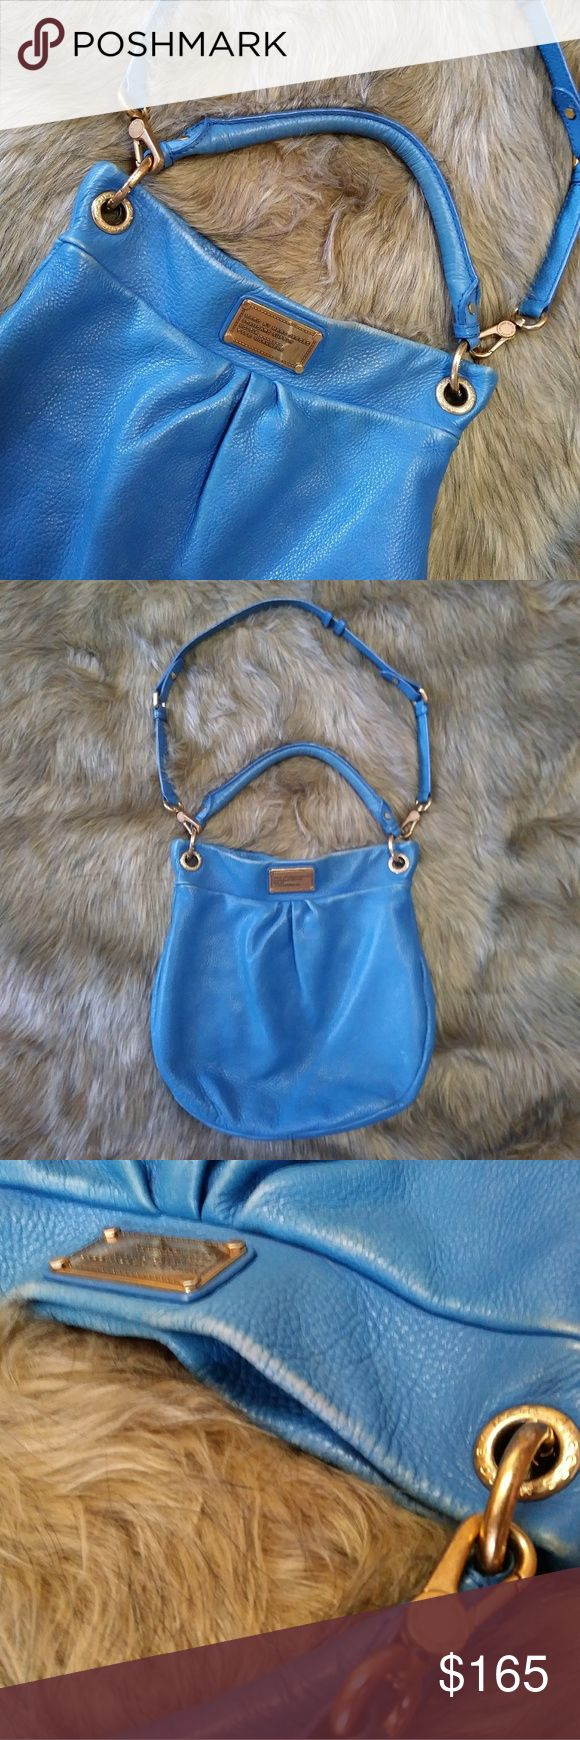 """Marc by Marc Jacobs Classic Q Hillier Hobo Bag Marc by Marc Jacobs Classic Q Hillier Hobo Bag in Blue. Shoulder and hand strap. 2 inner side pouches. Inside zip compartment. Magnet closure. Color fading in areas (pictured) but othetwise excellent condition. Approx 14"""" Wide x 13"""" Height x 31"""" Long Shoulder Strap. Marc By Marc Jacobs Bags"""